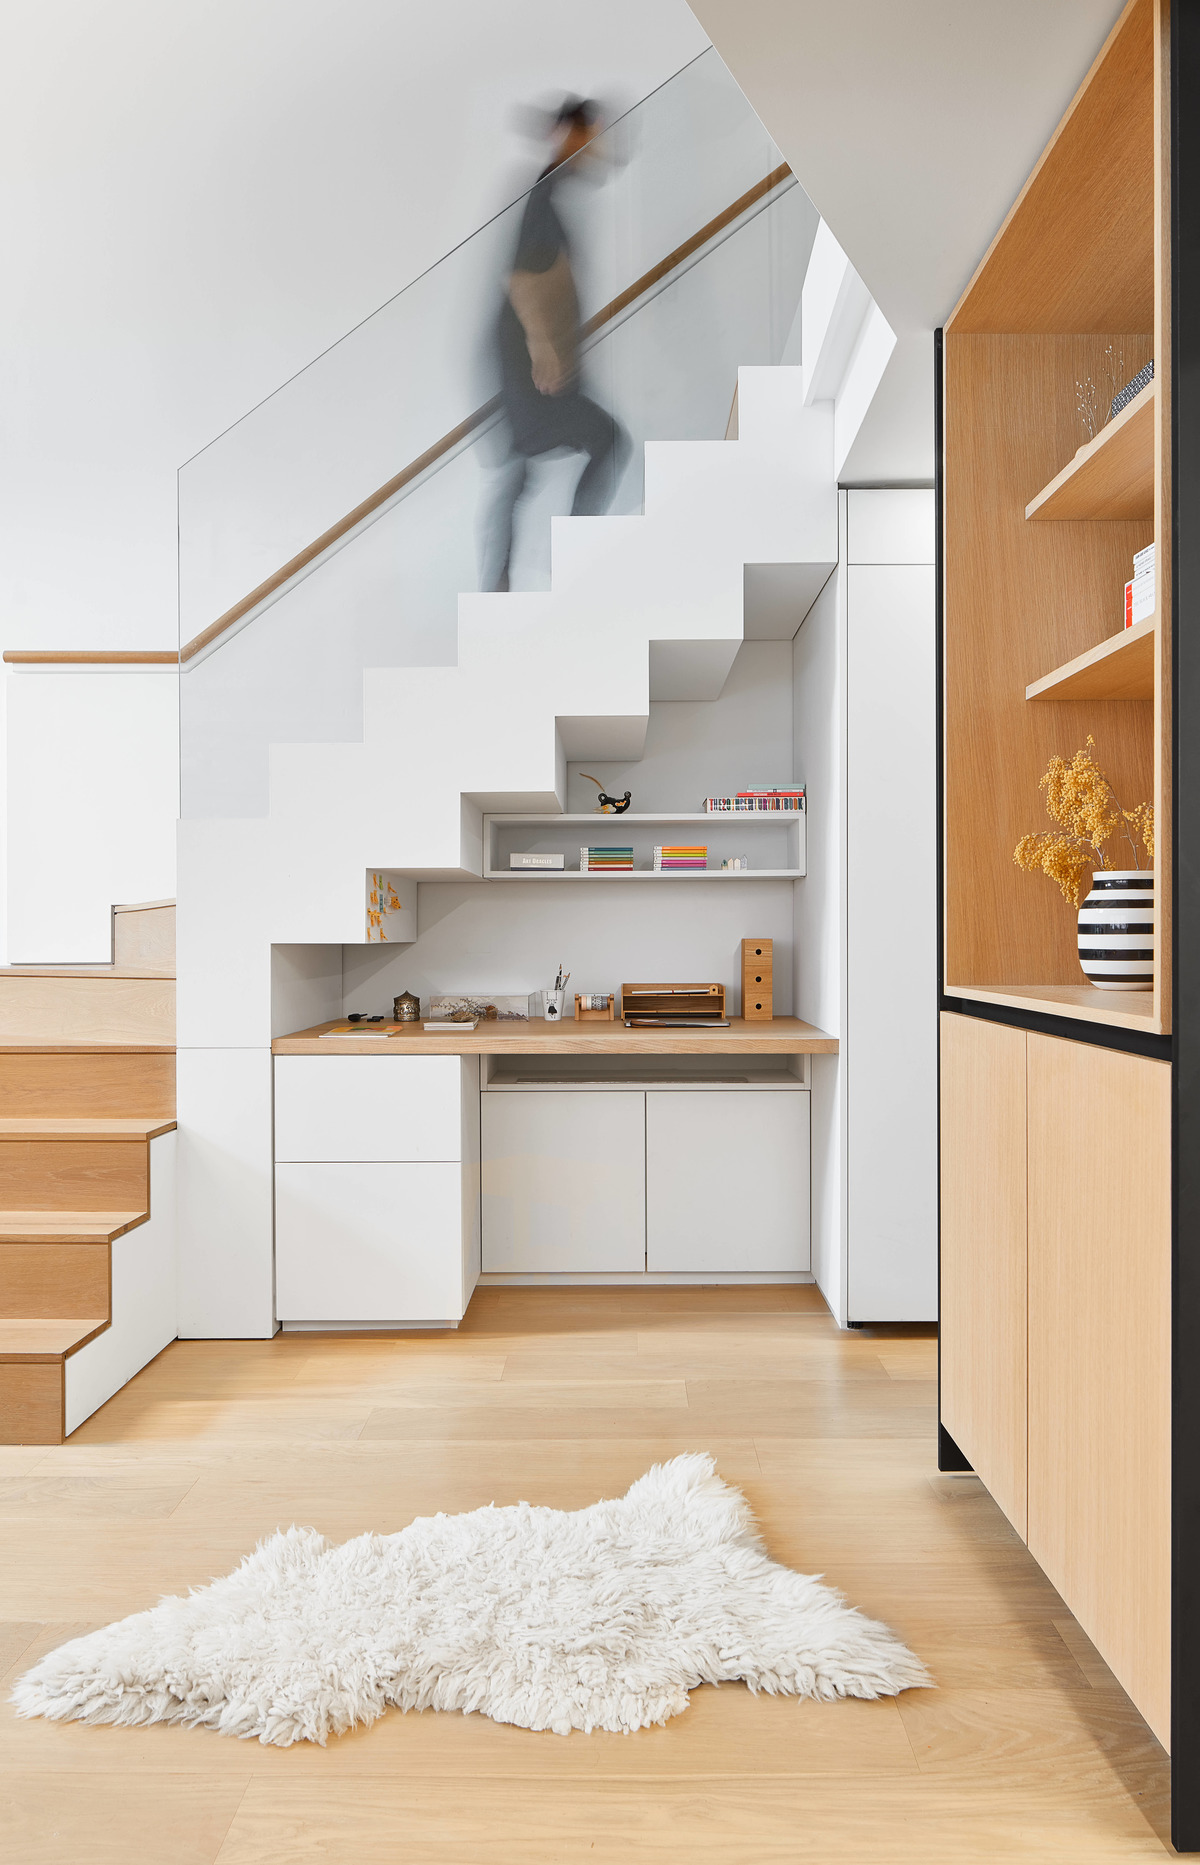 A modern desk has been built underneath the stairs of this loft apartment.